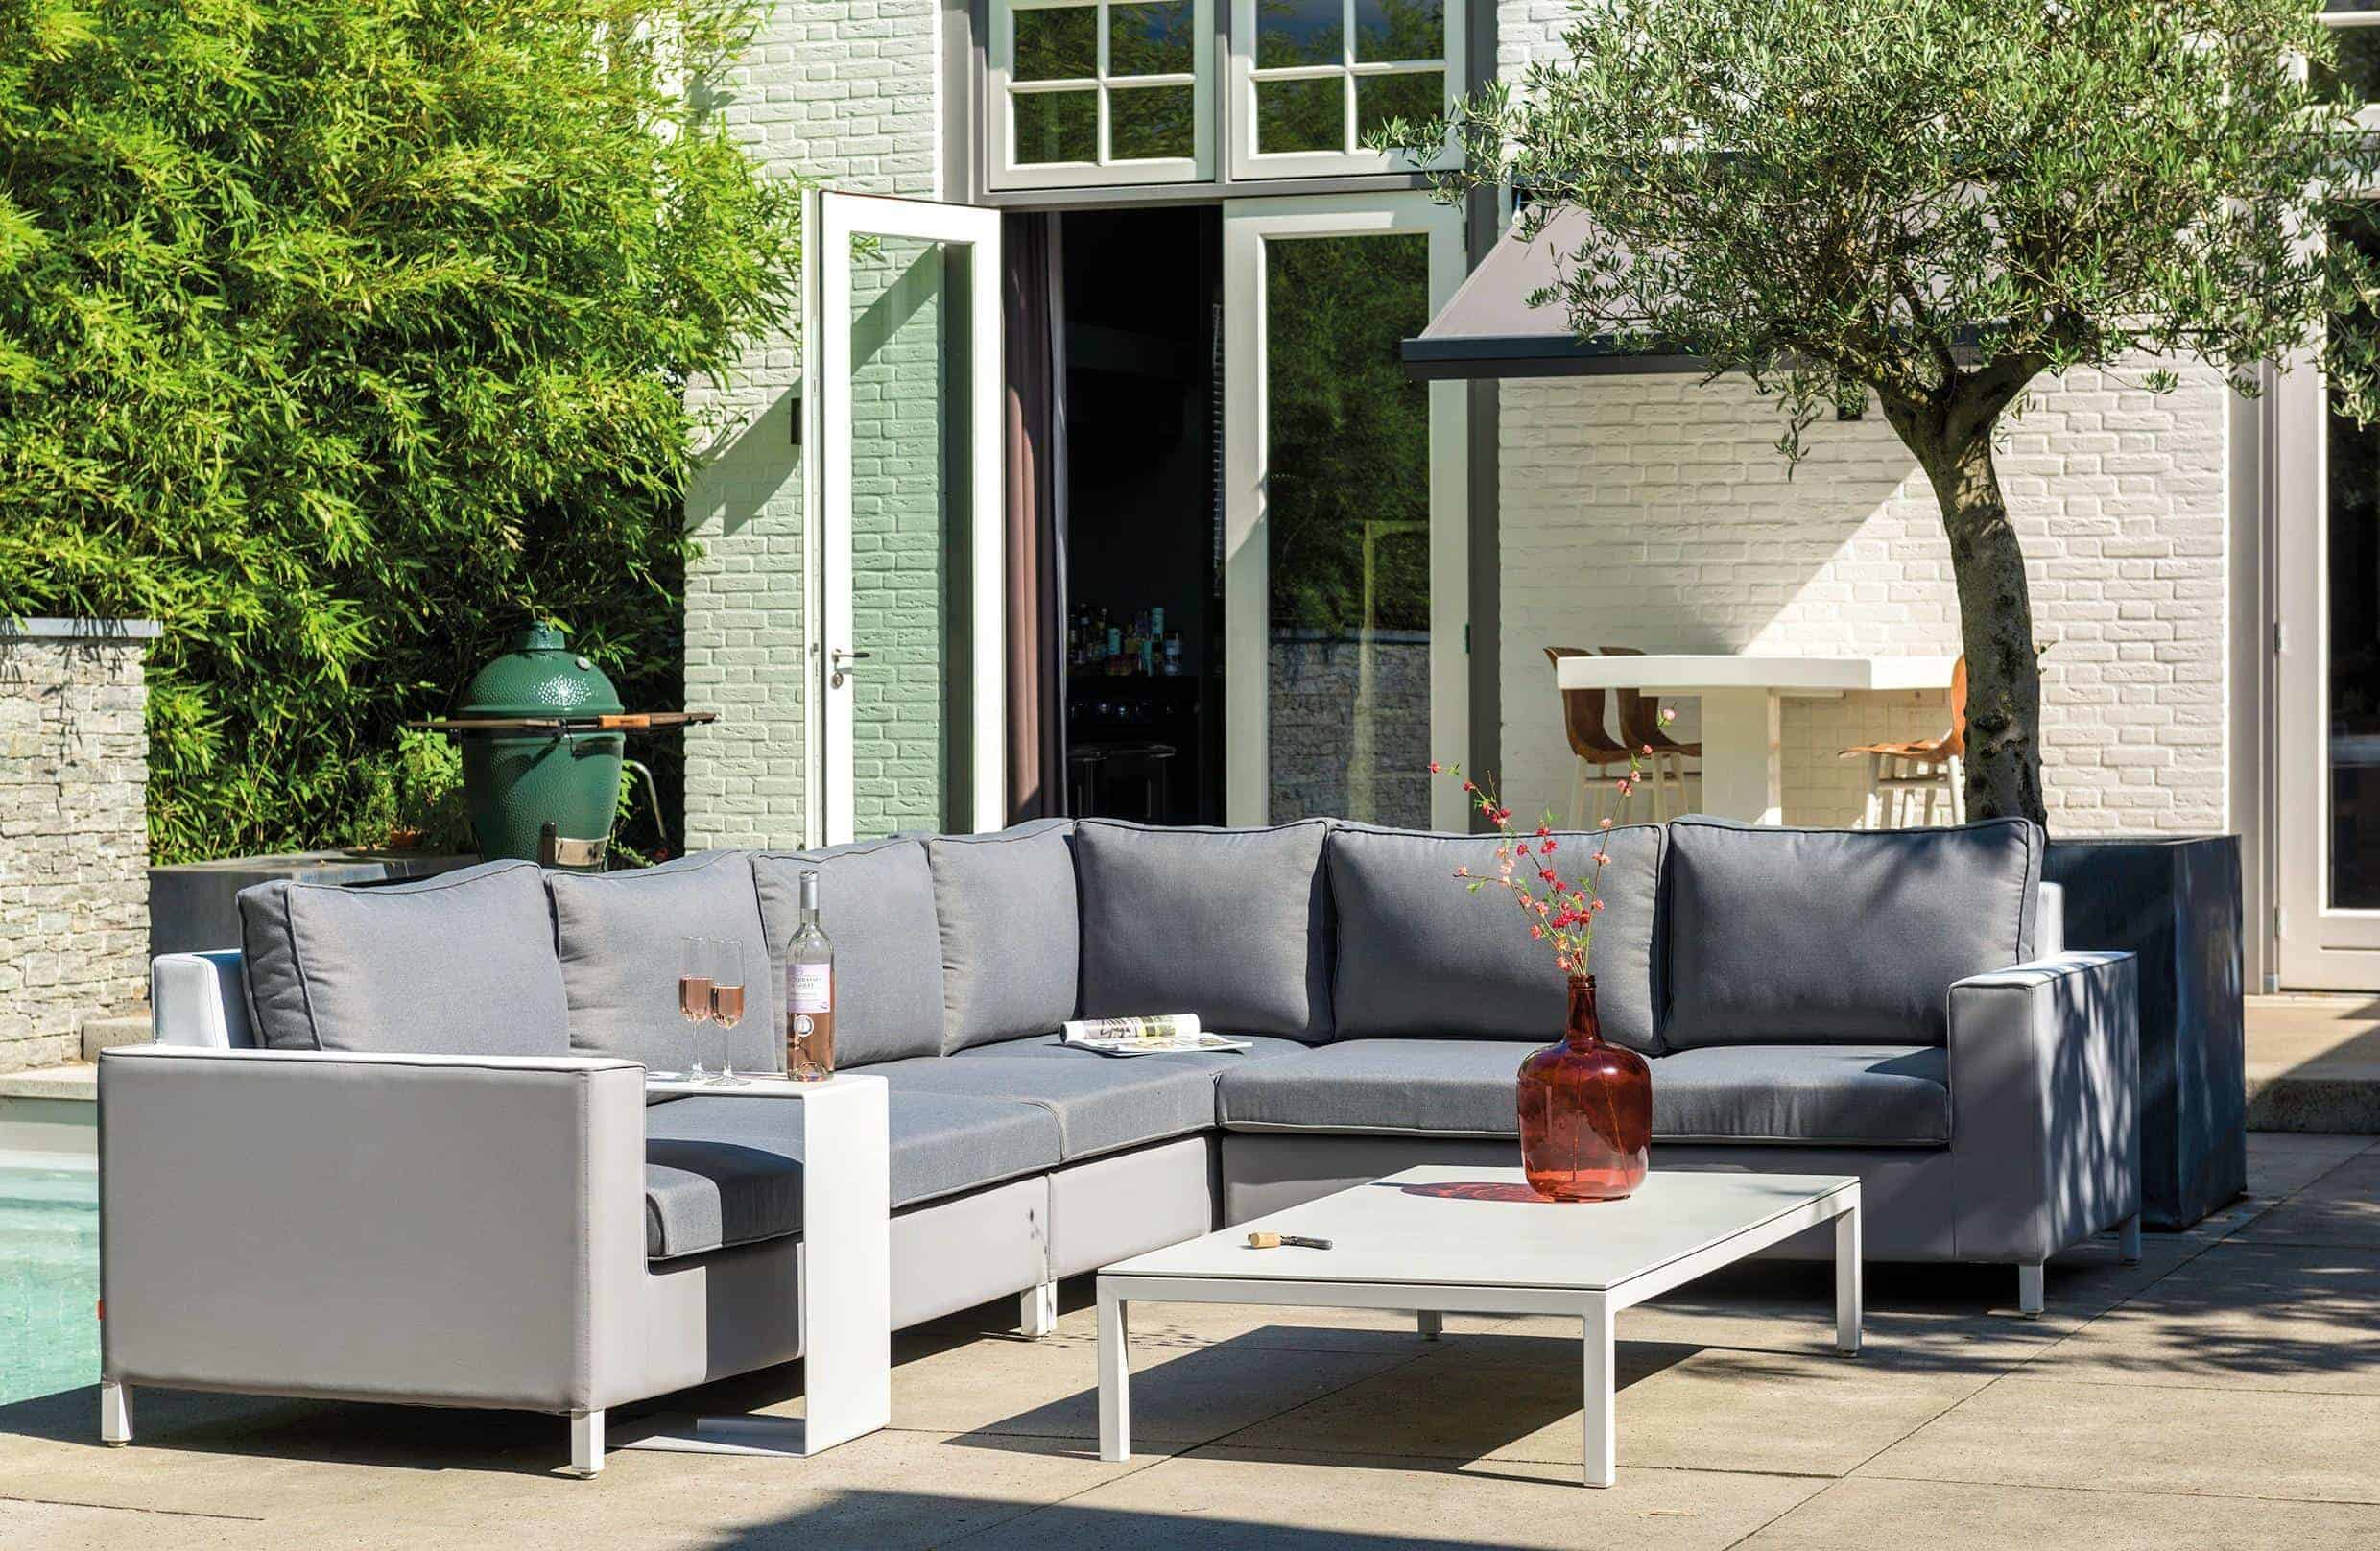 outdoor garden furniture dublin ireland vales outdoor sofa set. Black Bedroom Furniture Sets. Home Design Ideas